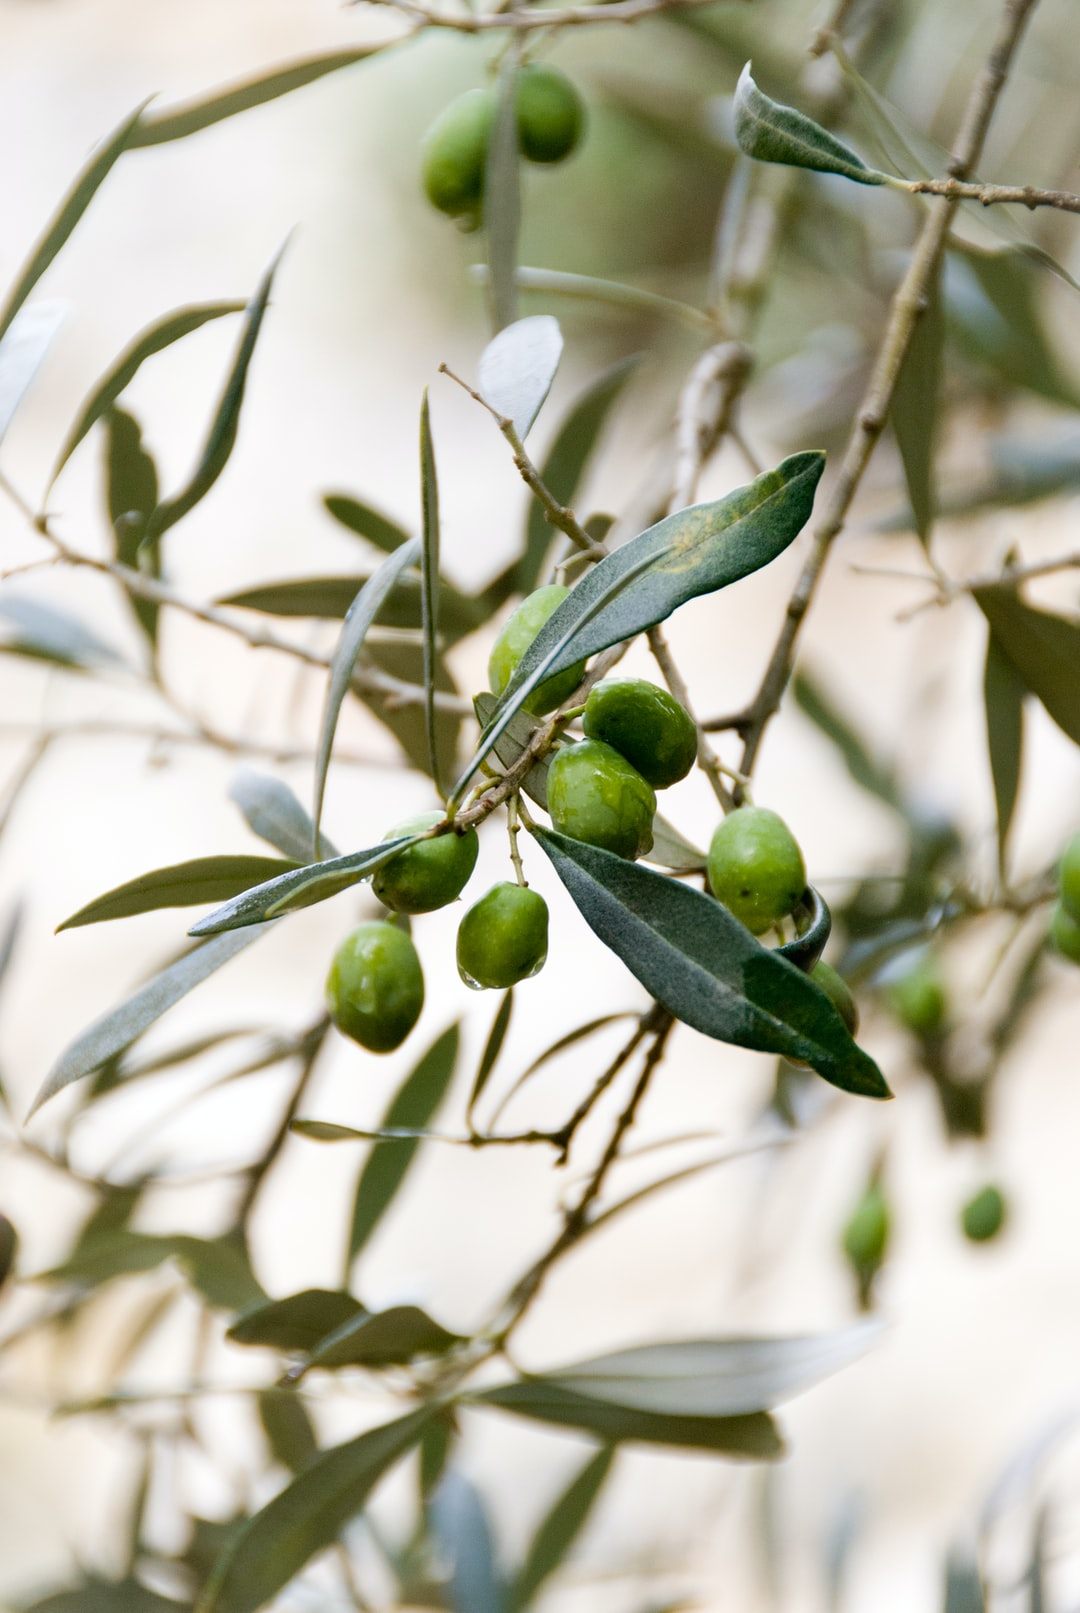 In Italy, the olive harvest begins in autumn. Freshly squeezed olive oil is treasured for its slightly peppery 'pizzica' taste.